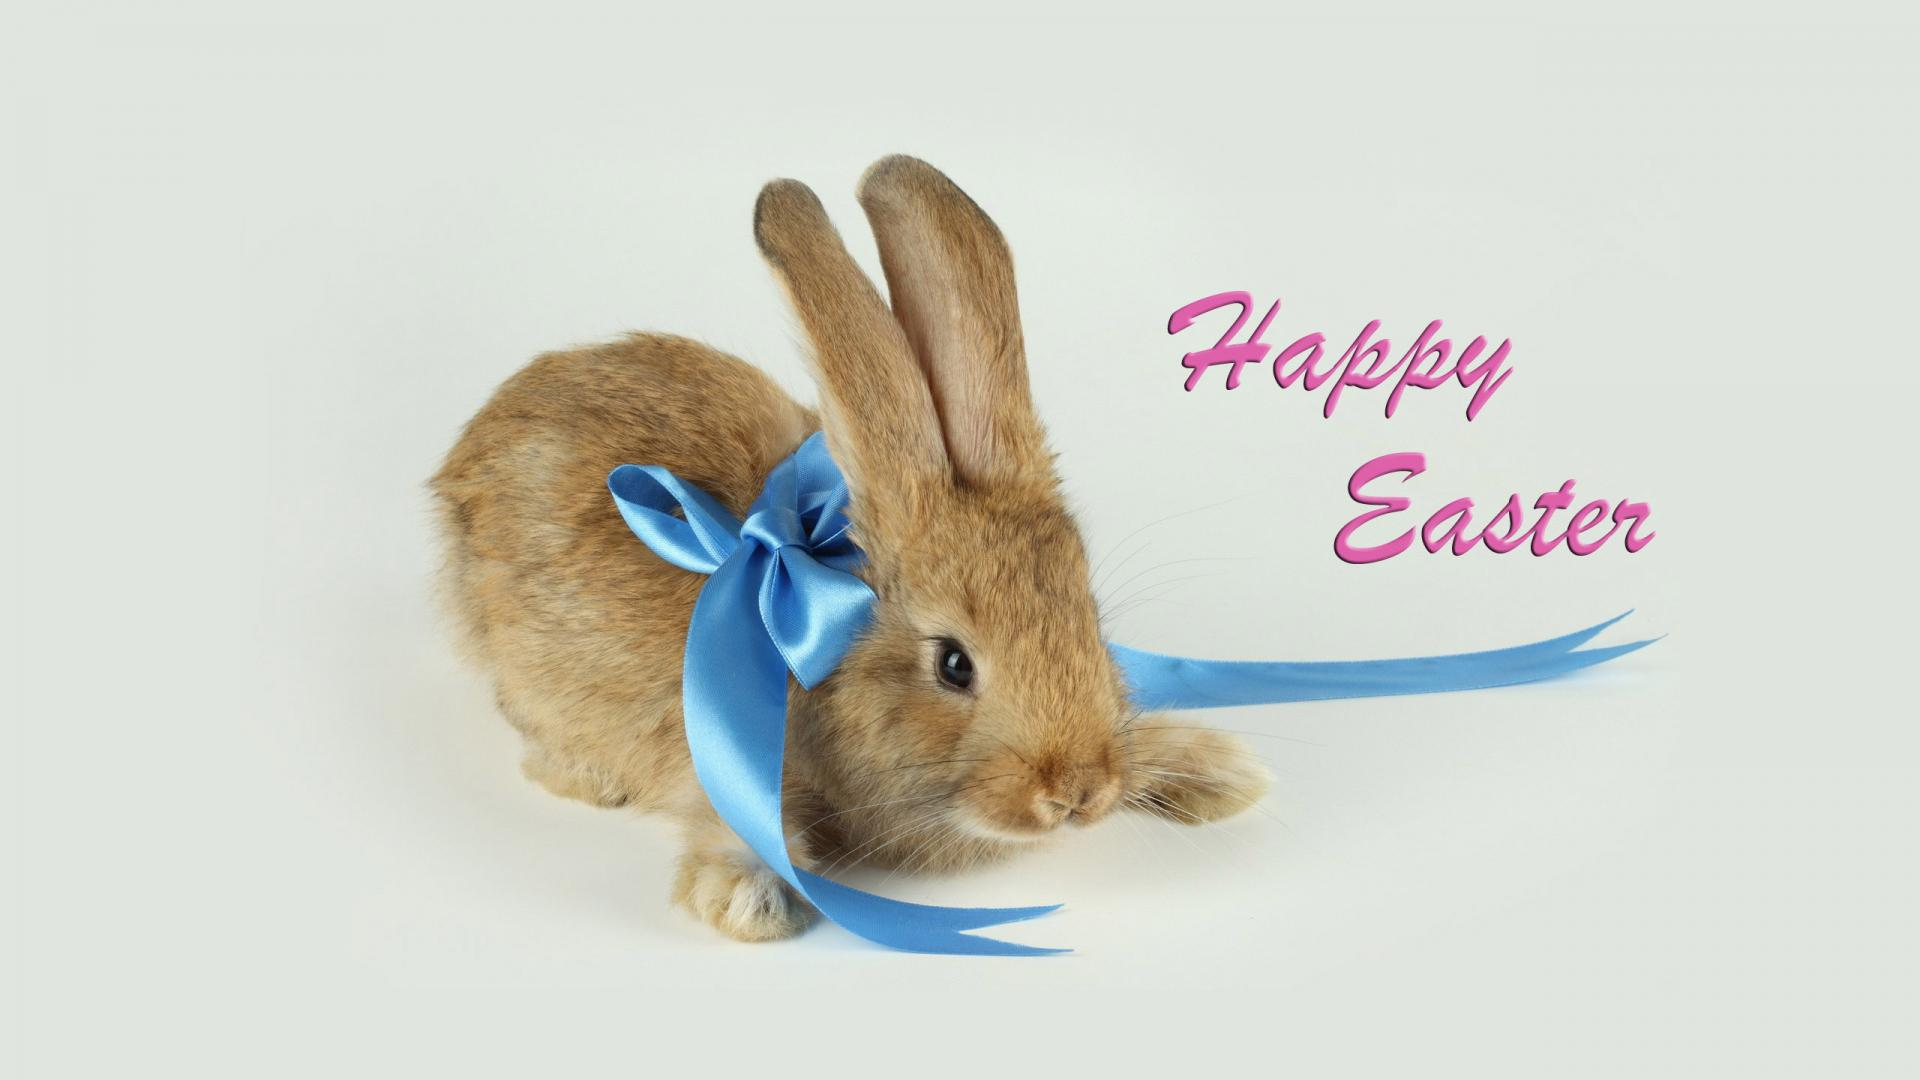 85 very beautiful easter greeting pictures and photos happy easter bunny with blue bow kristyandbryce Choice Image